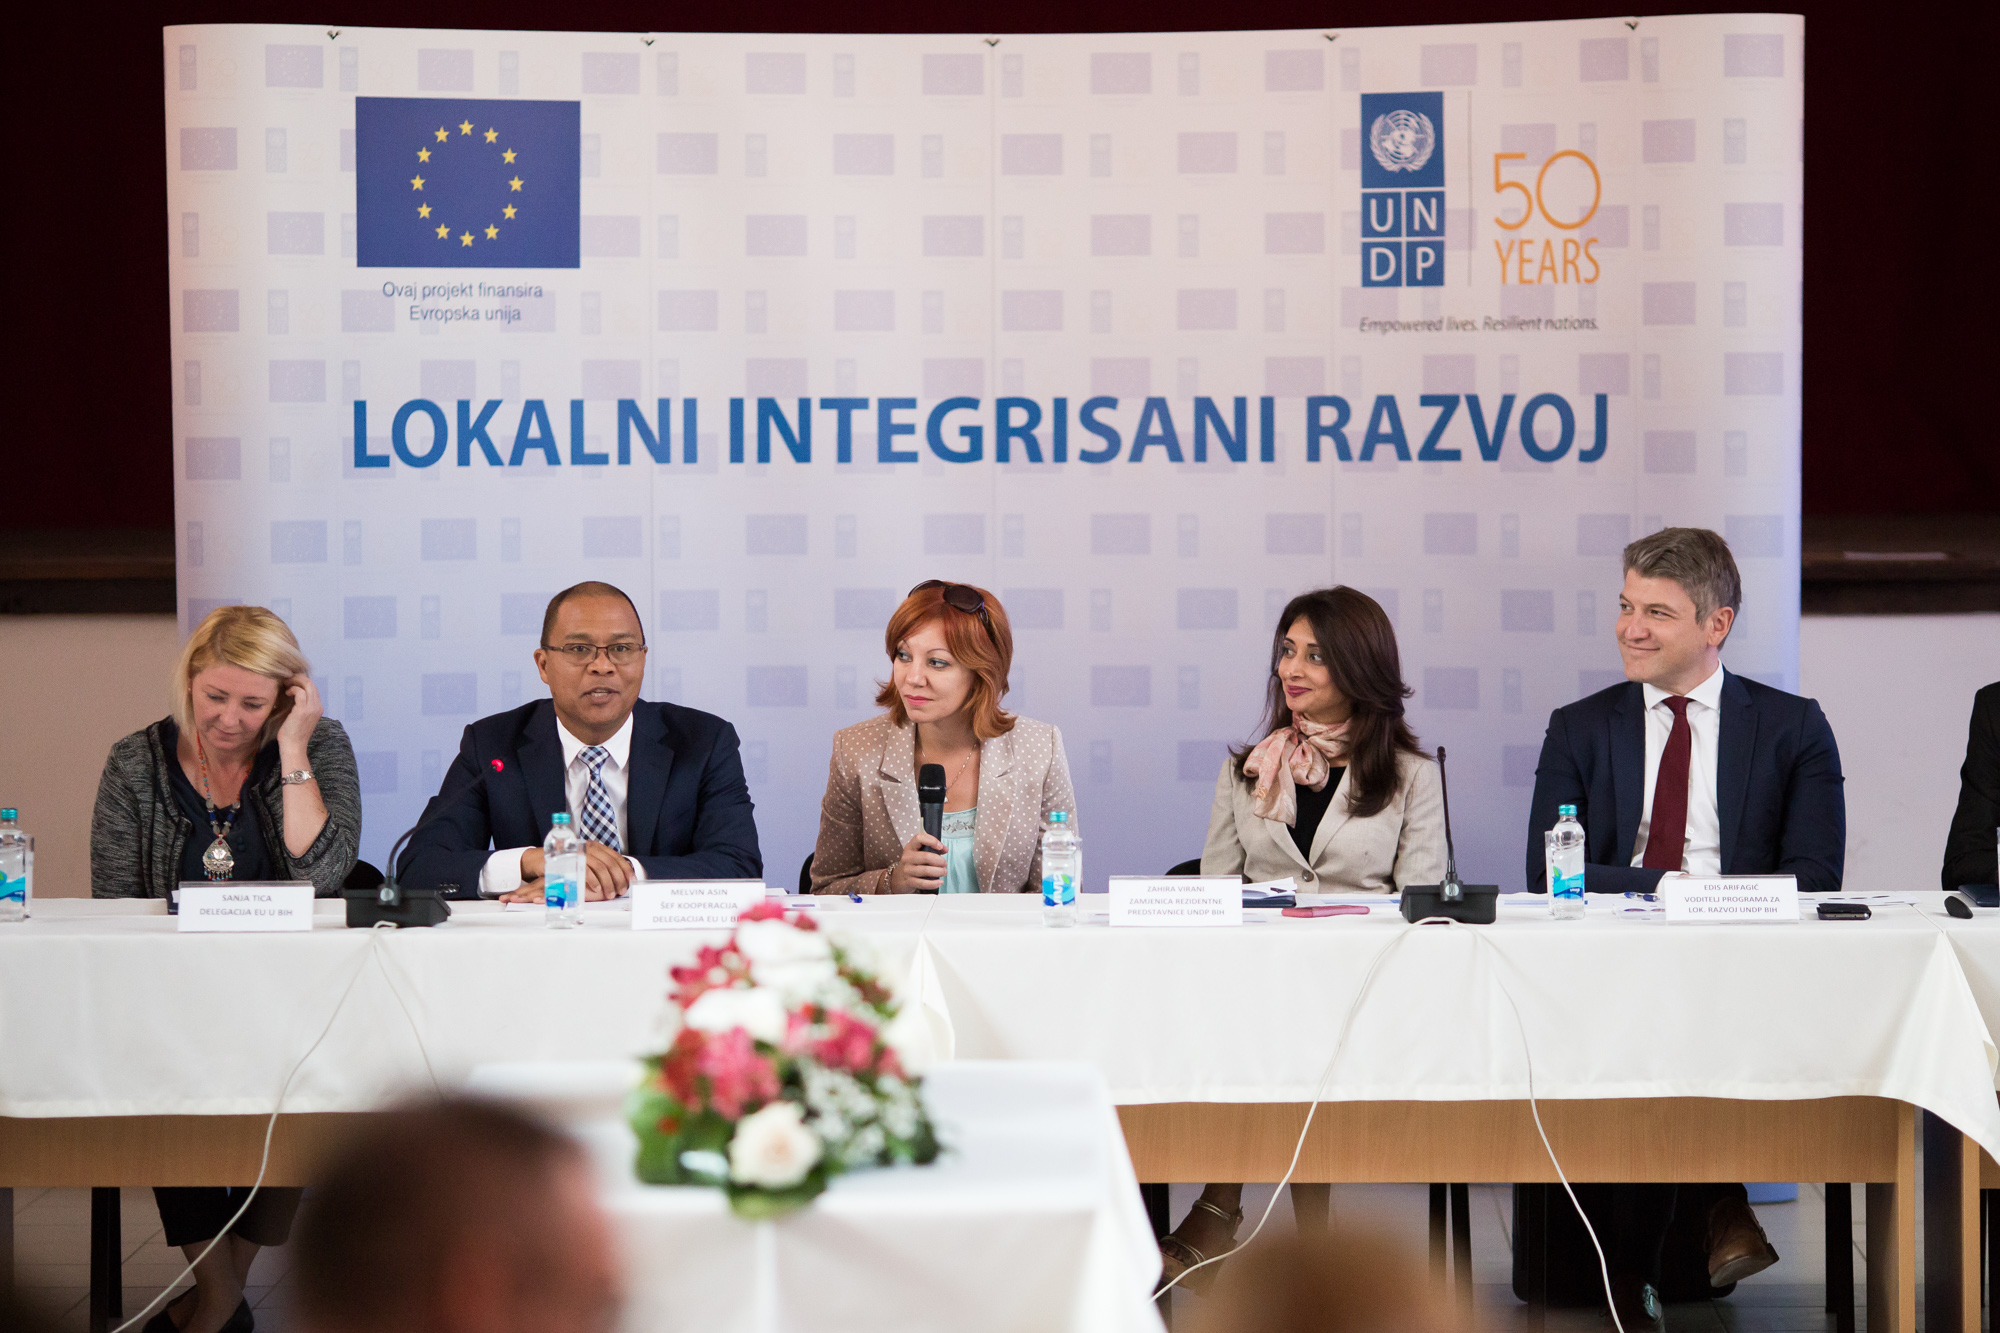 EU and UNDP support more than 100,000 people in BiH through Local Integrated Development project